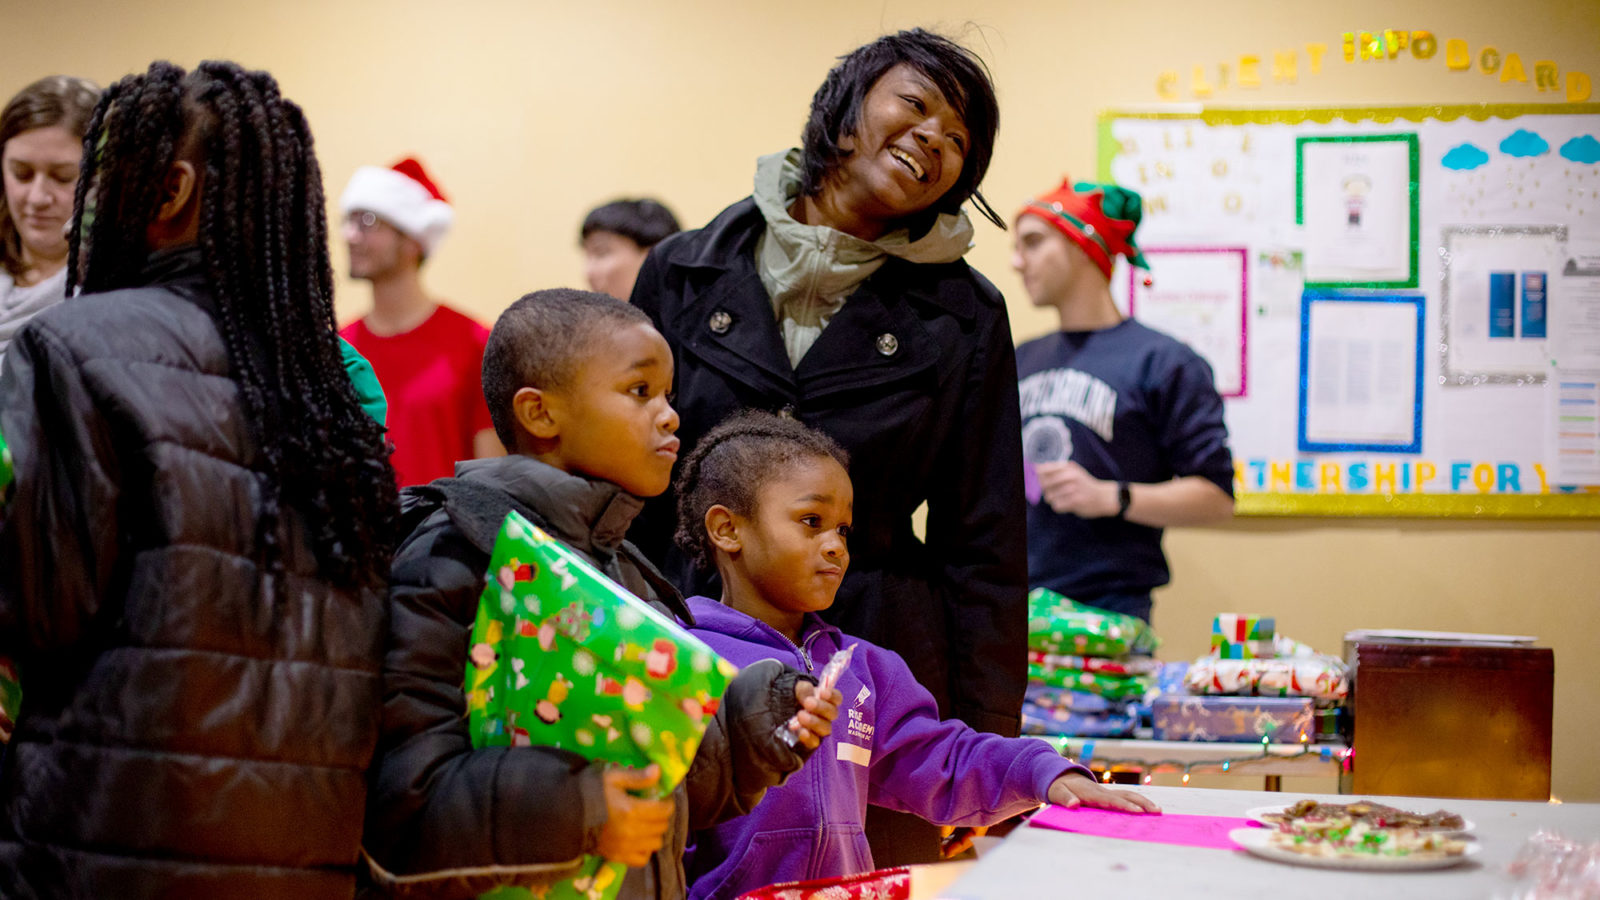 A woman smiles with her two children as they hold wrapped Christmas presents.